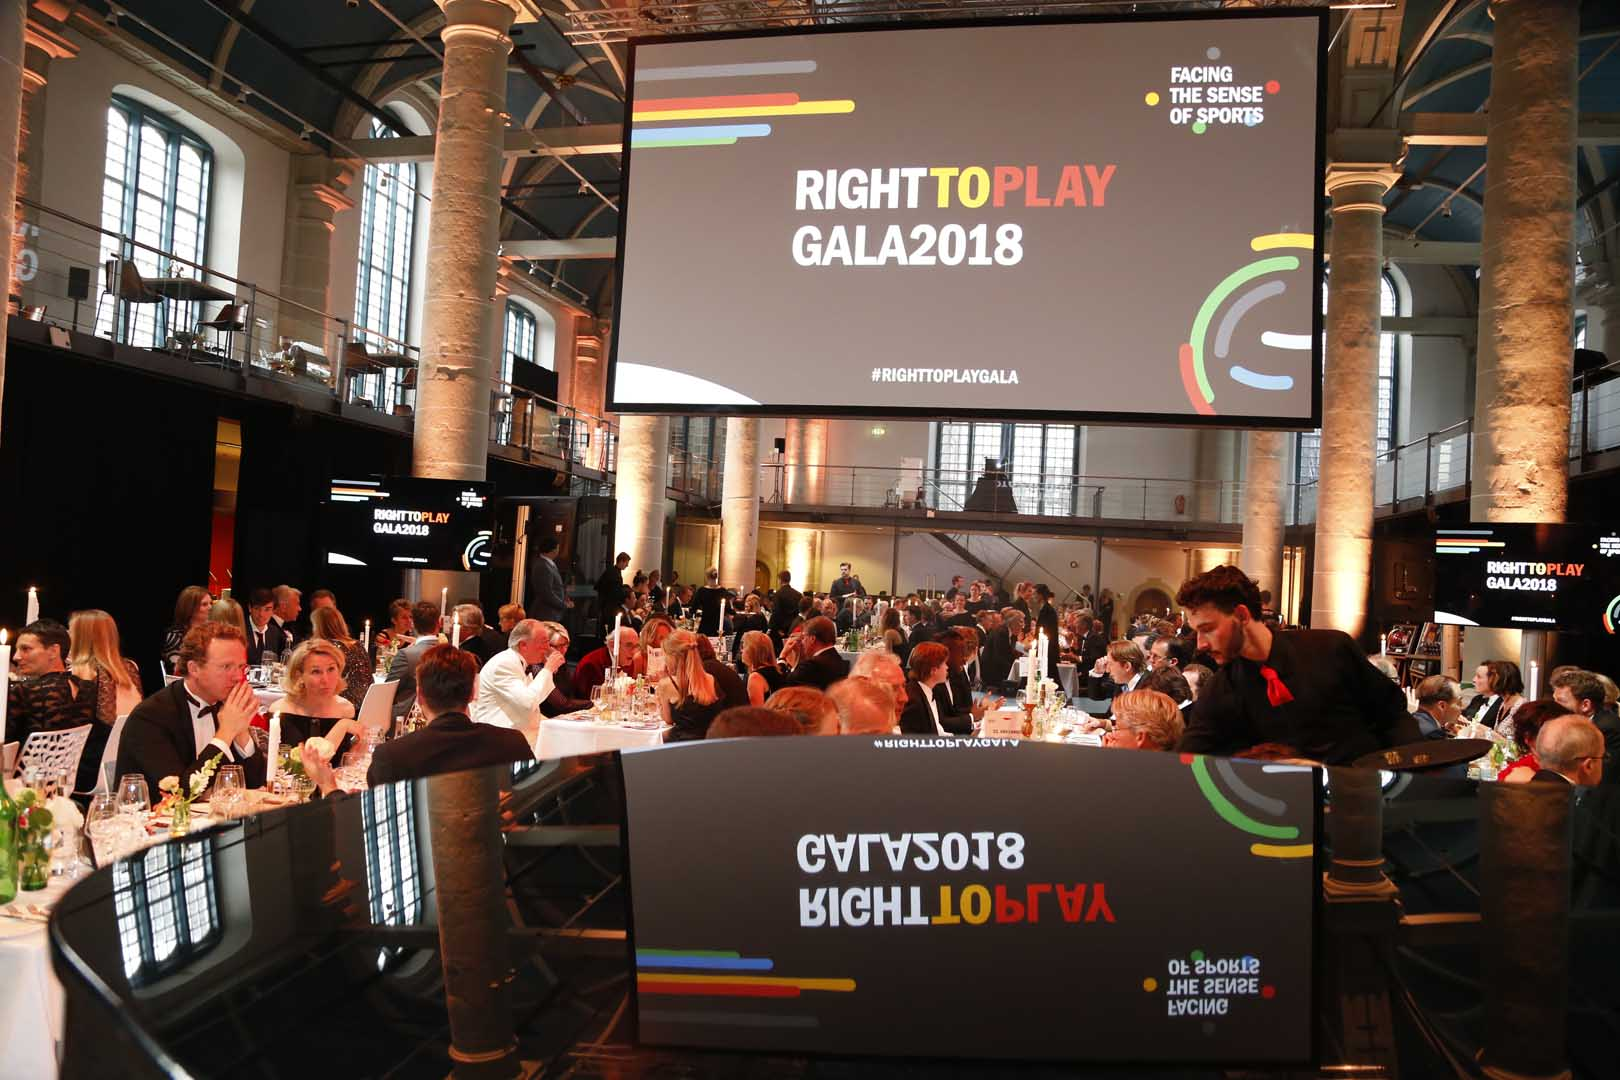 Right to Play Gala